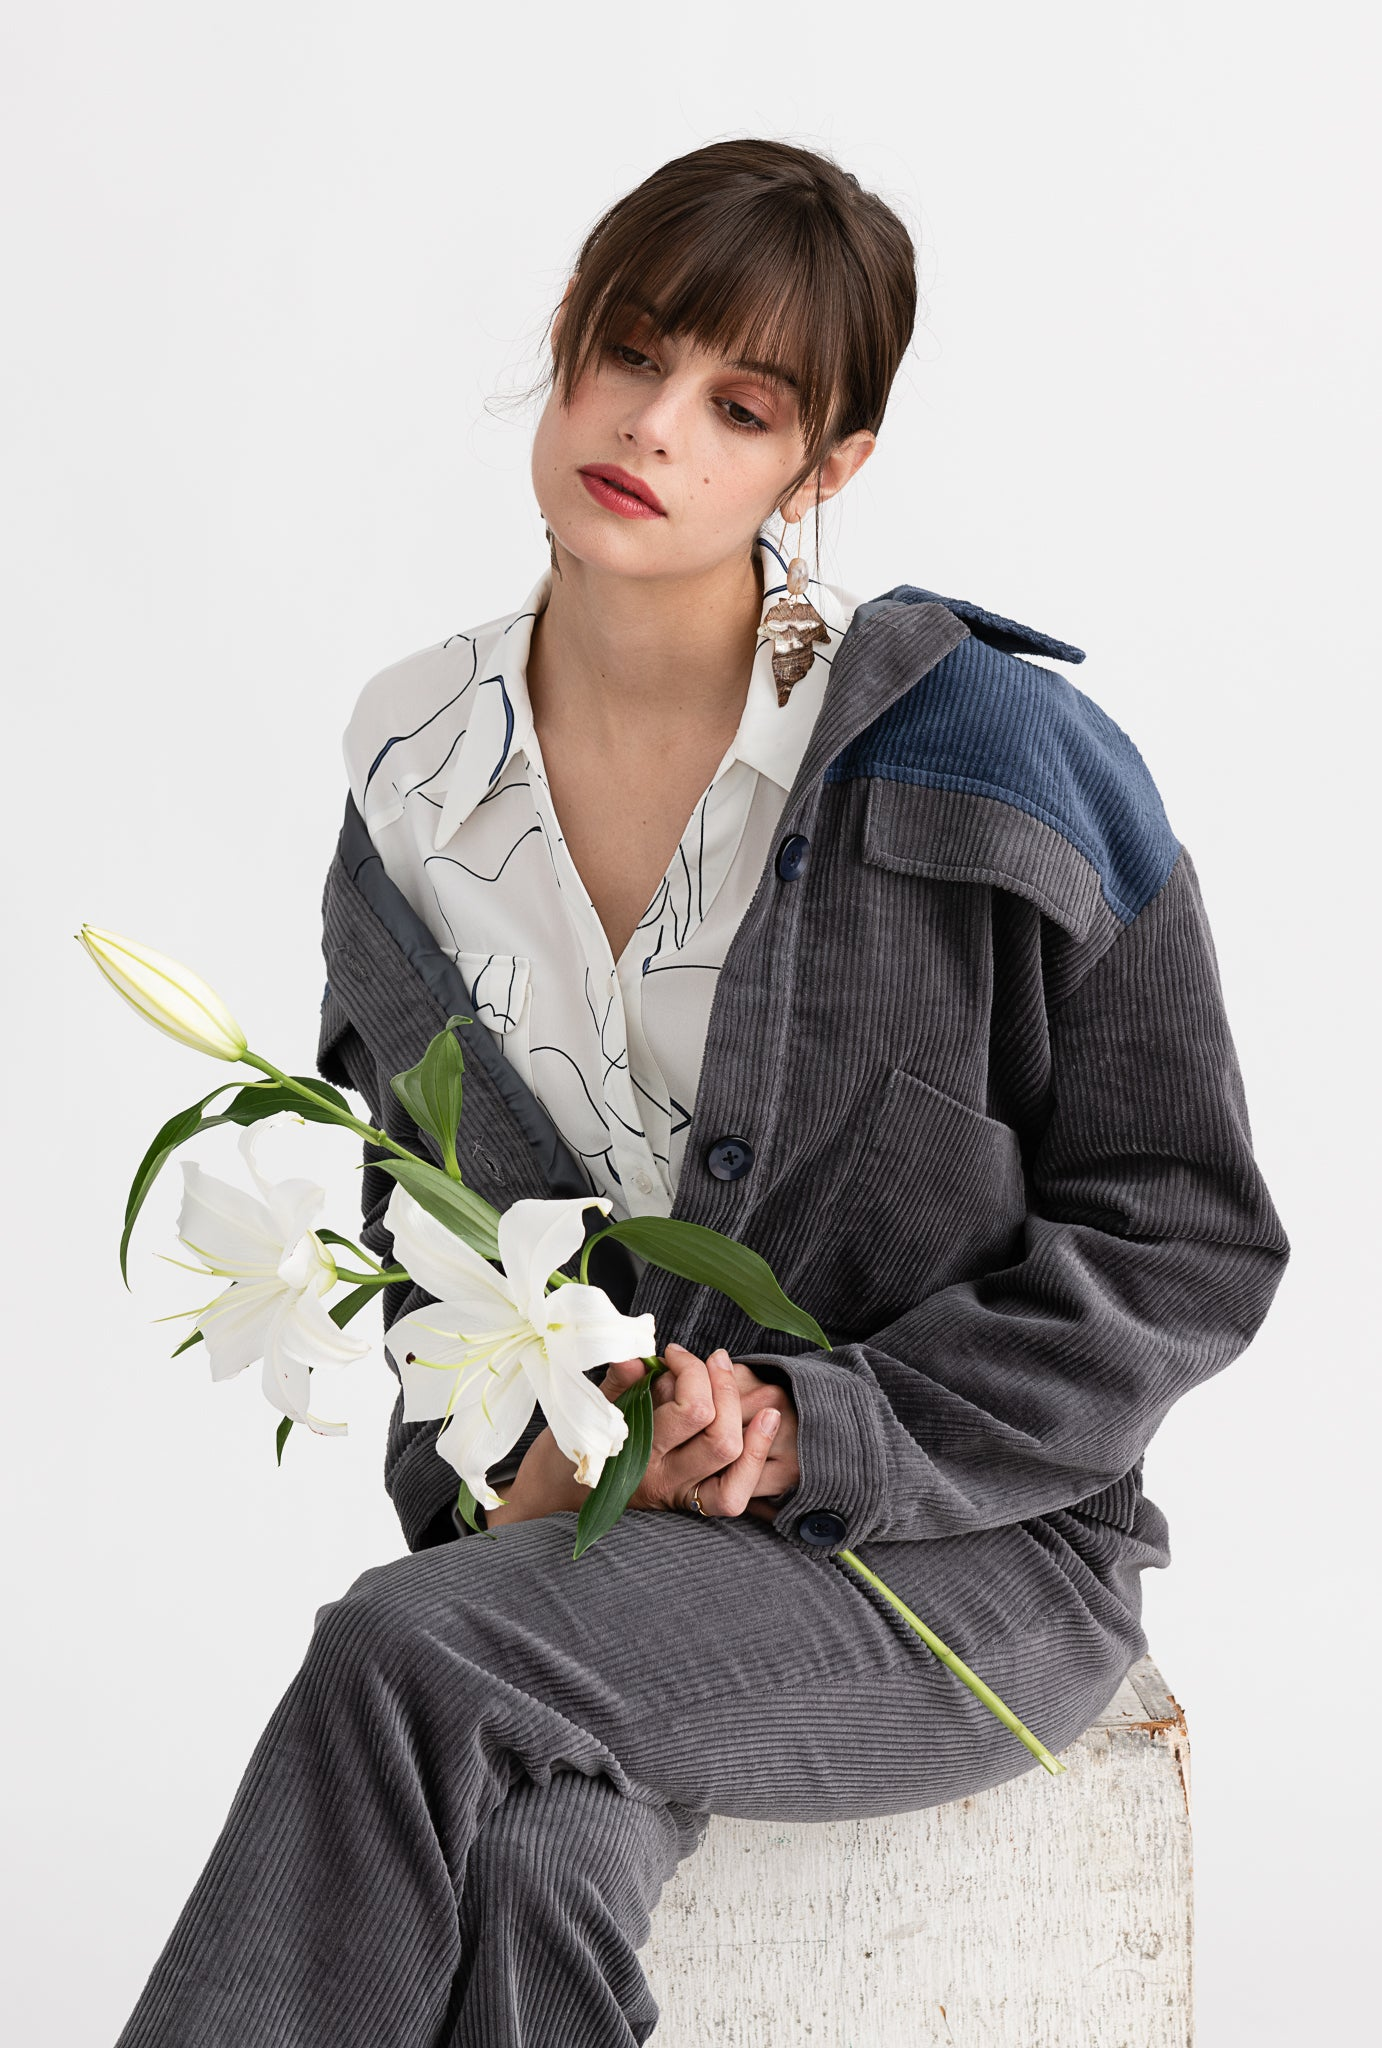 Weston Jacket - Twilight - Navy and grey oversized drop shoulder jacket - Petite Studio NYC